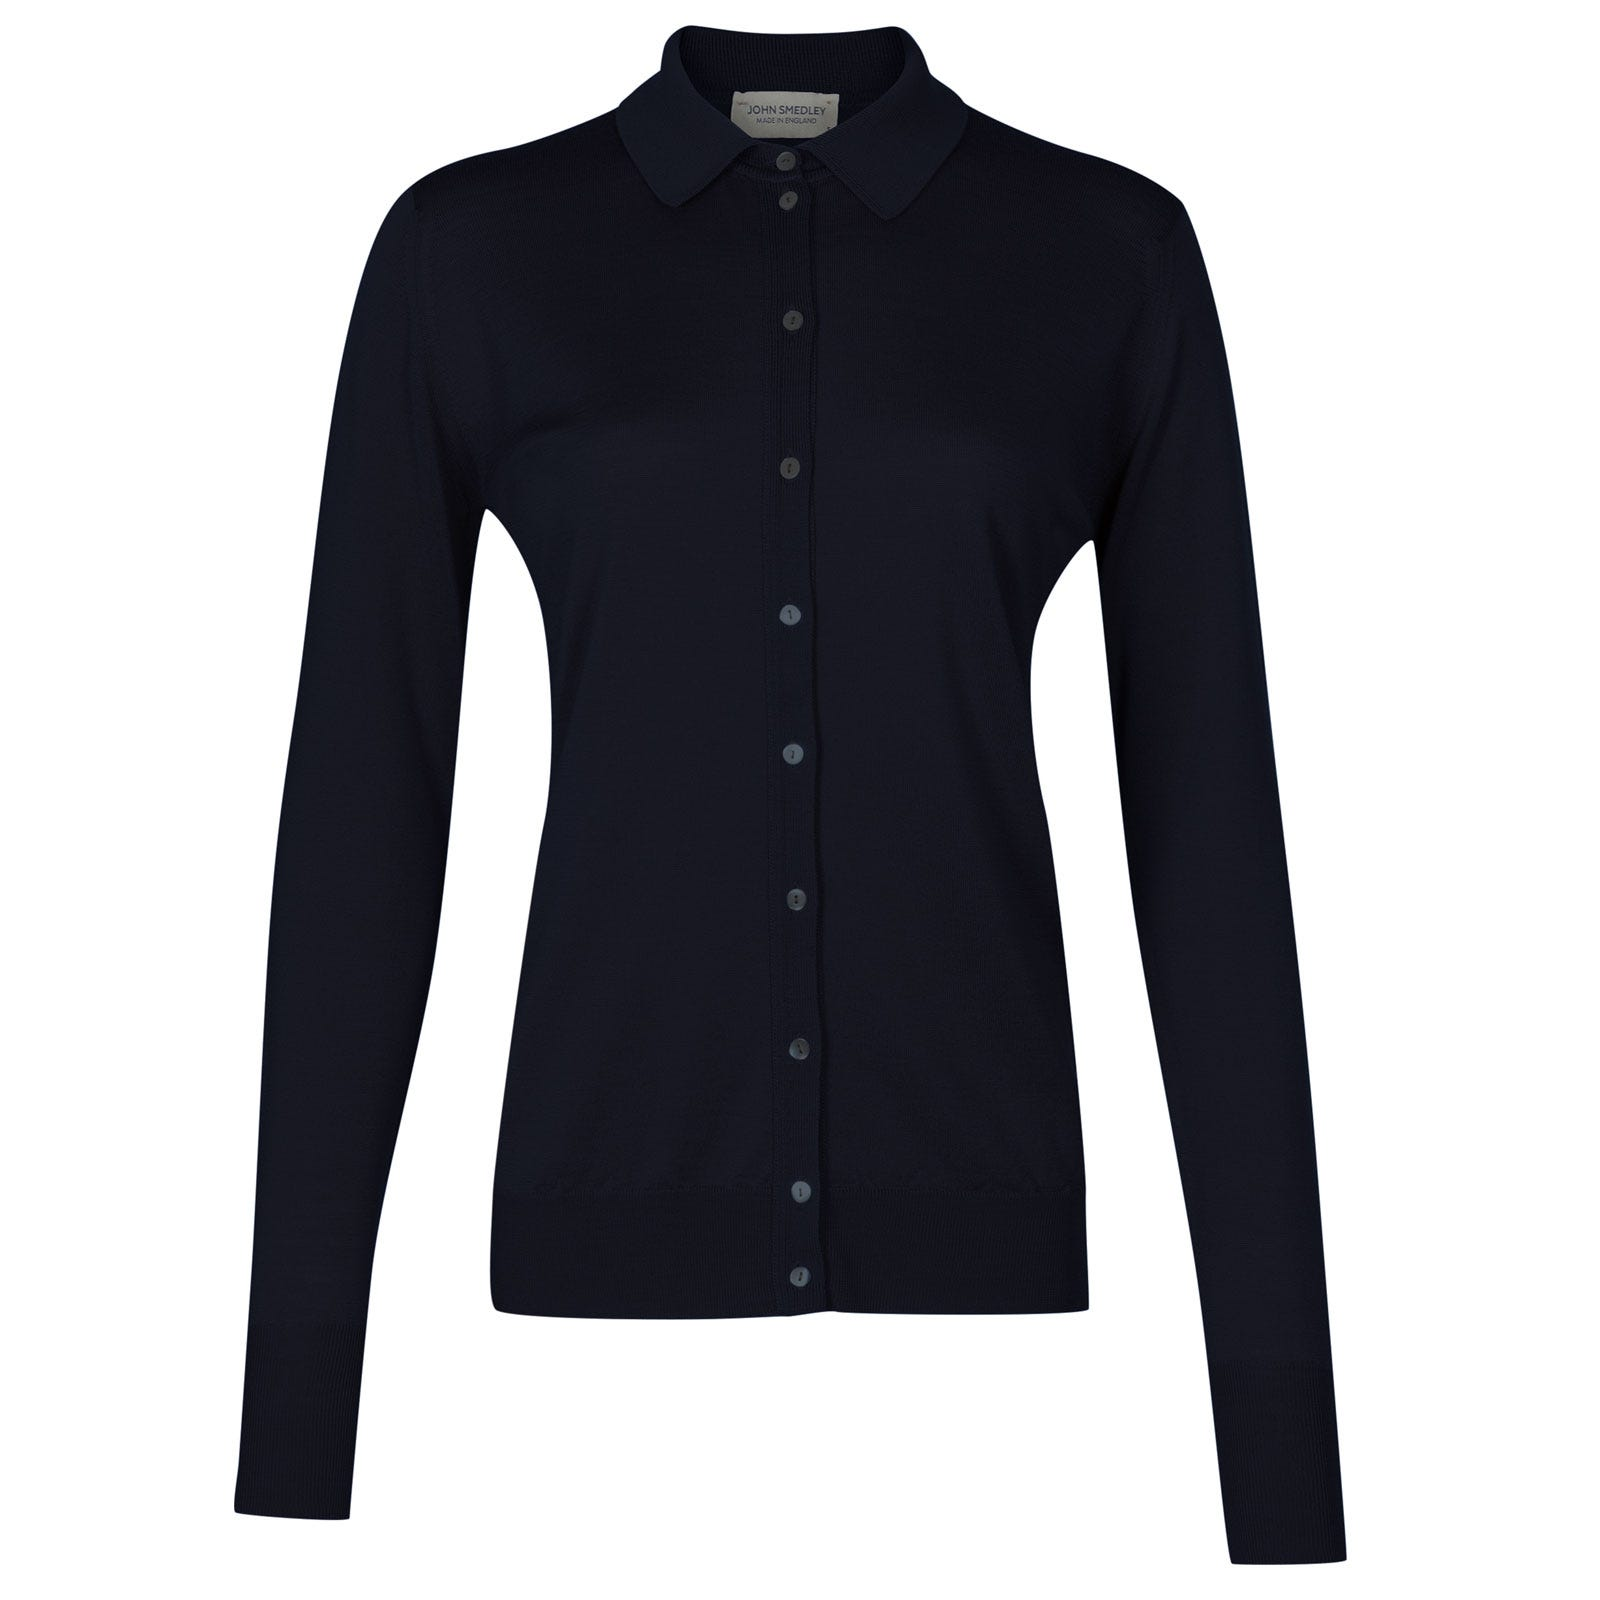 John Smedley bartley Merino Wool Shirt in Midnight-XL